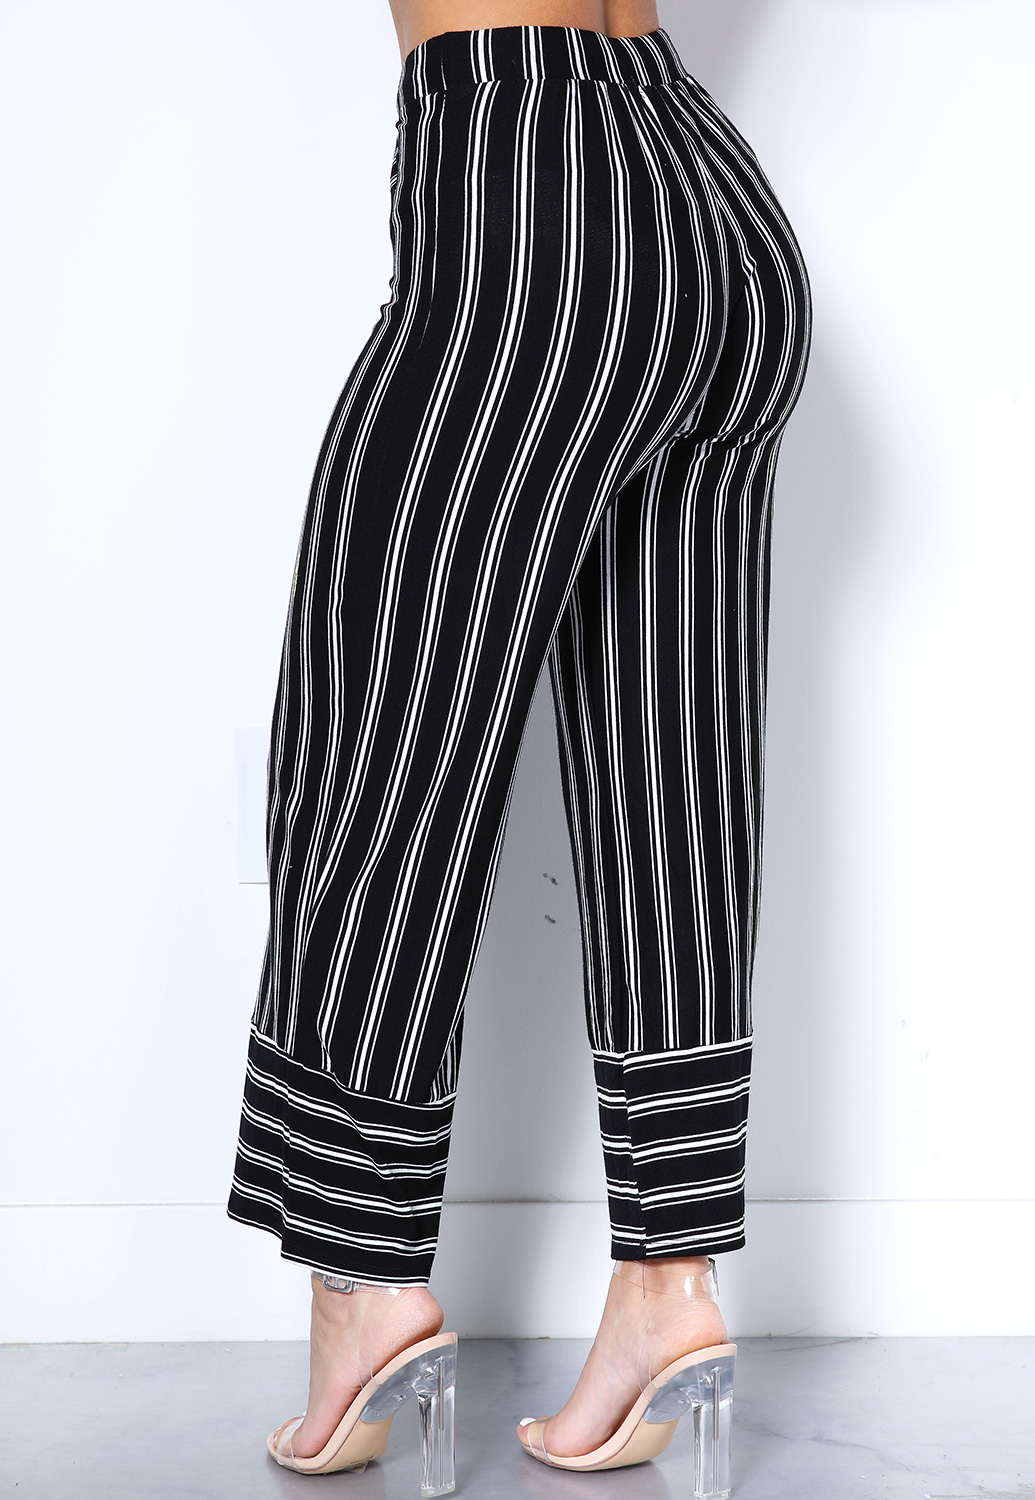 limited quantity hot-selling newest 2019 best sell Vertical Striped Flare Leg Pants | Shop Best Sellers at ...